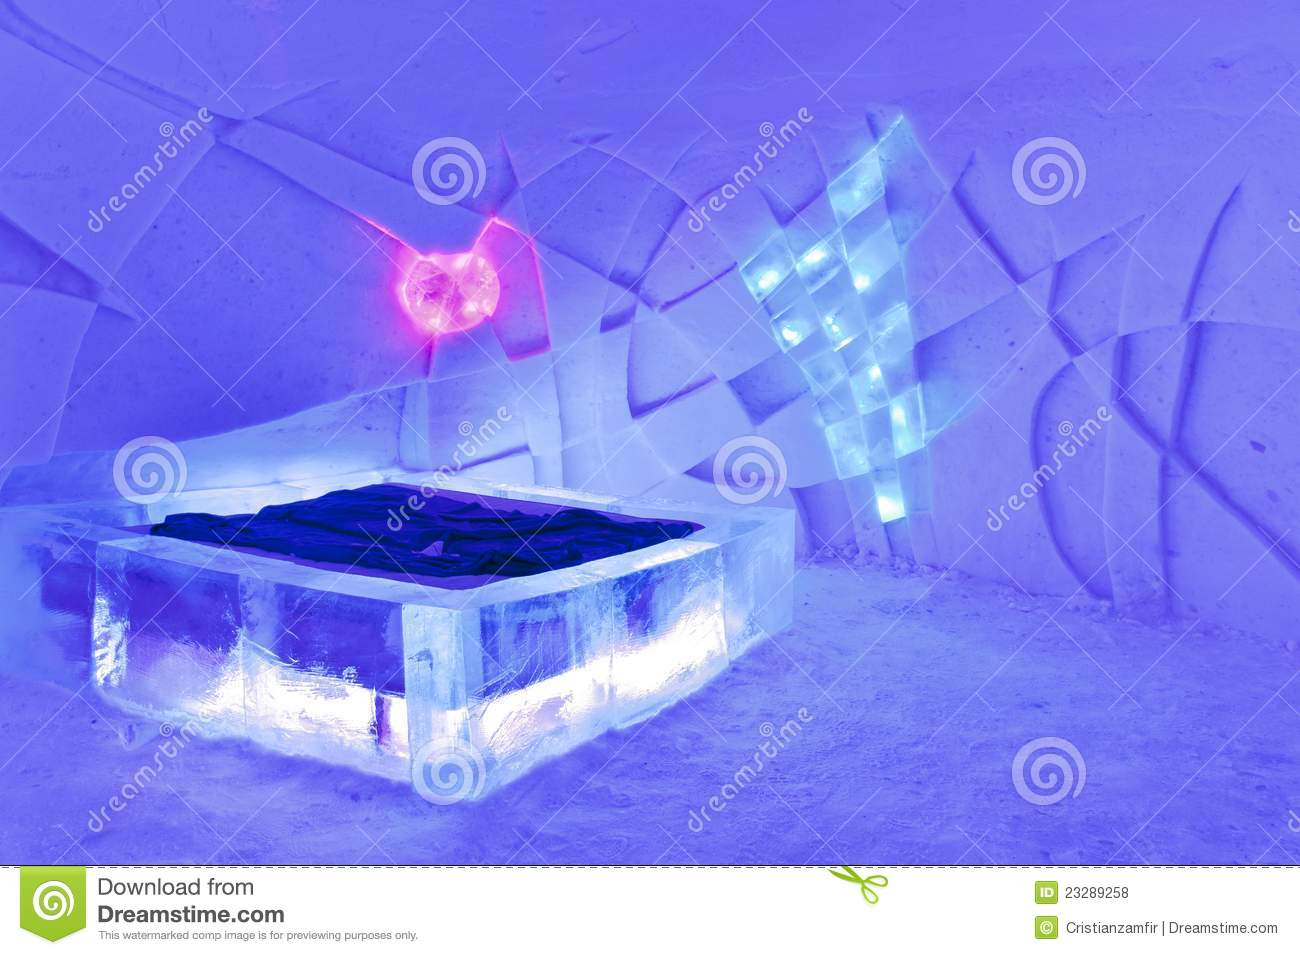 Room In Ice Hotel Editorial Stock Photo Image 23289258 : room ice hotel 23289258 from www.dreamstime.com size 1300 x 955 jpeg 110kB